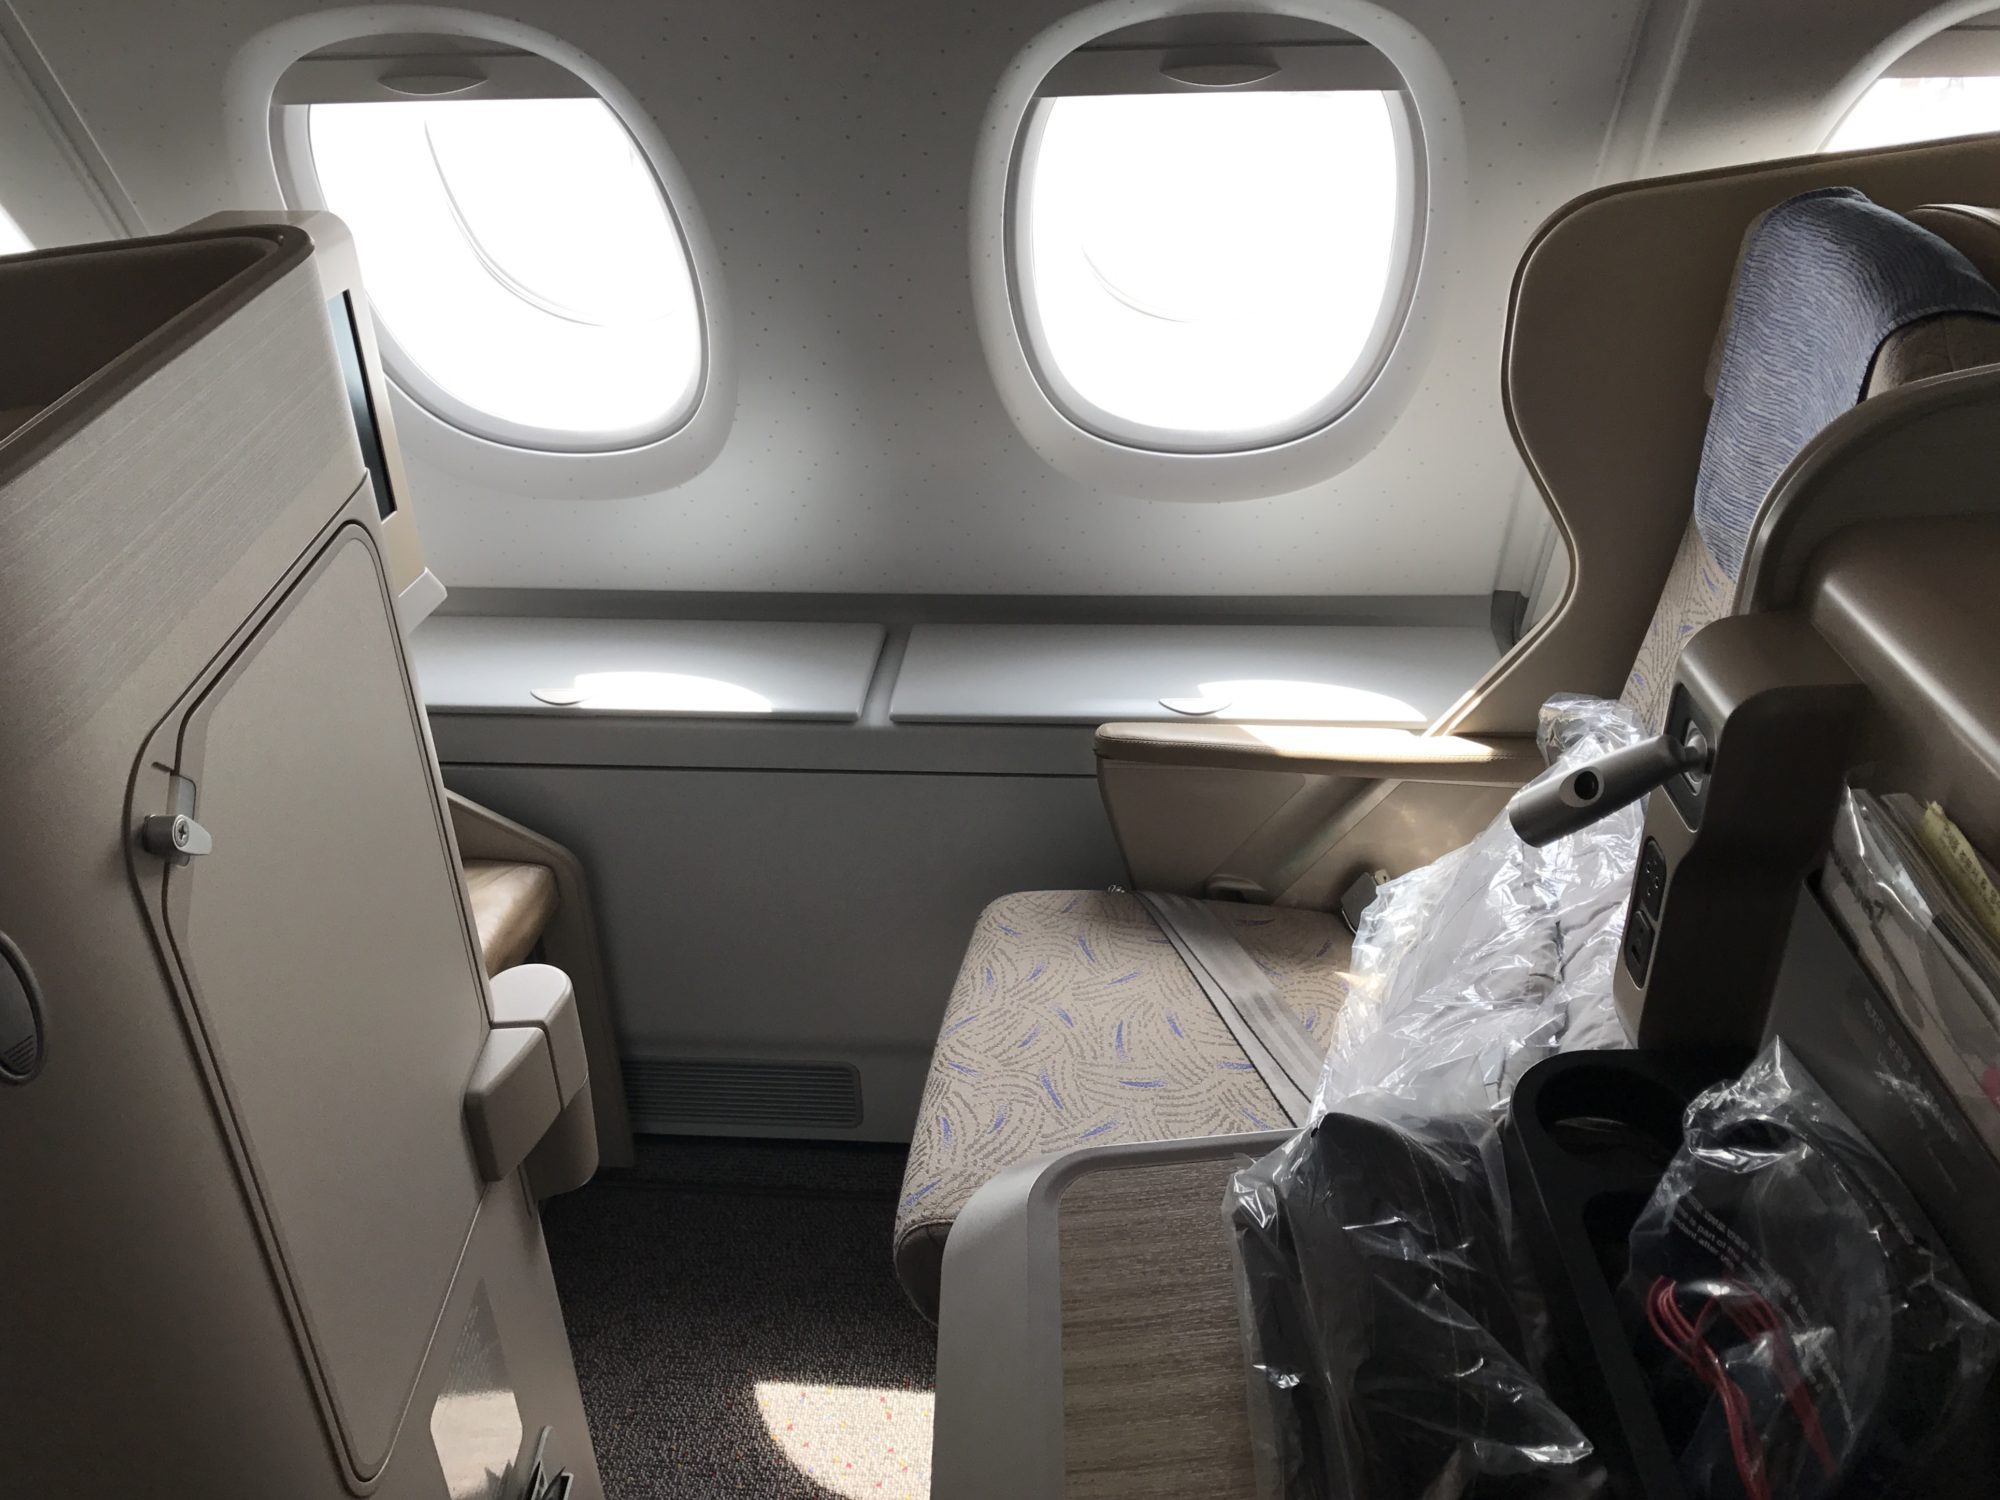 Asiana Business Class Window Seat 10K